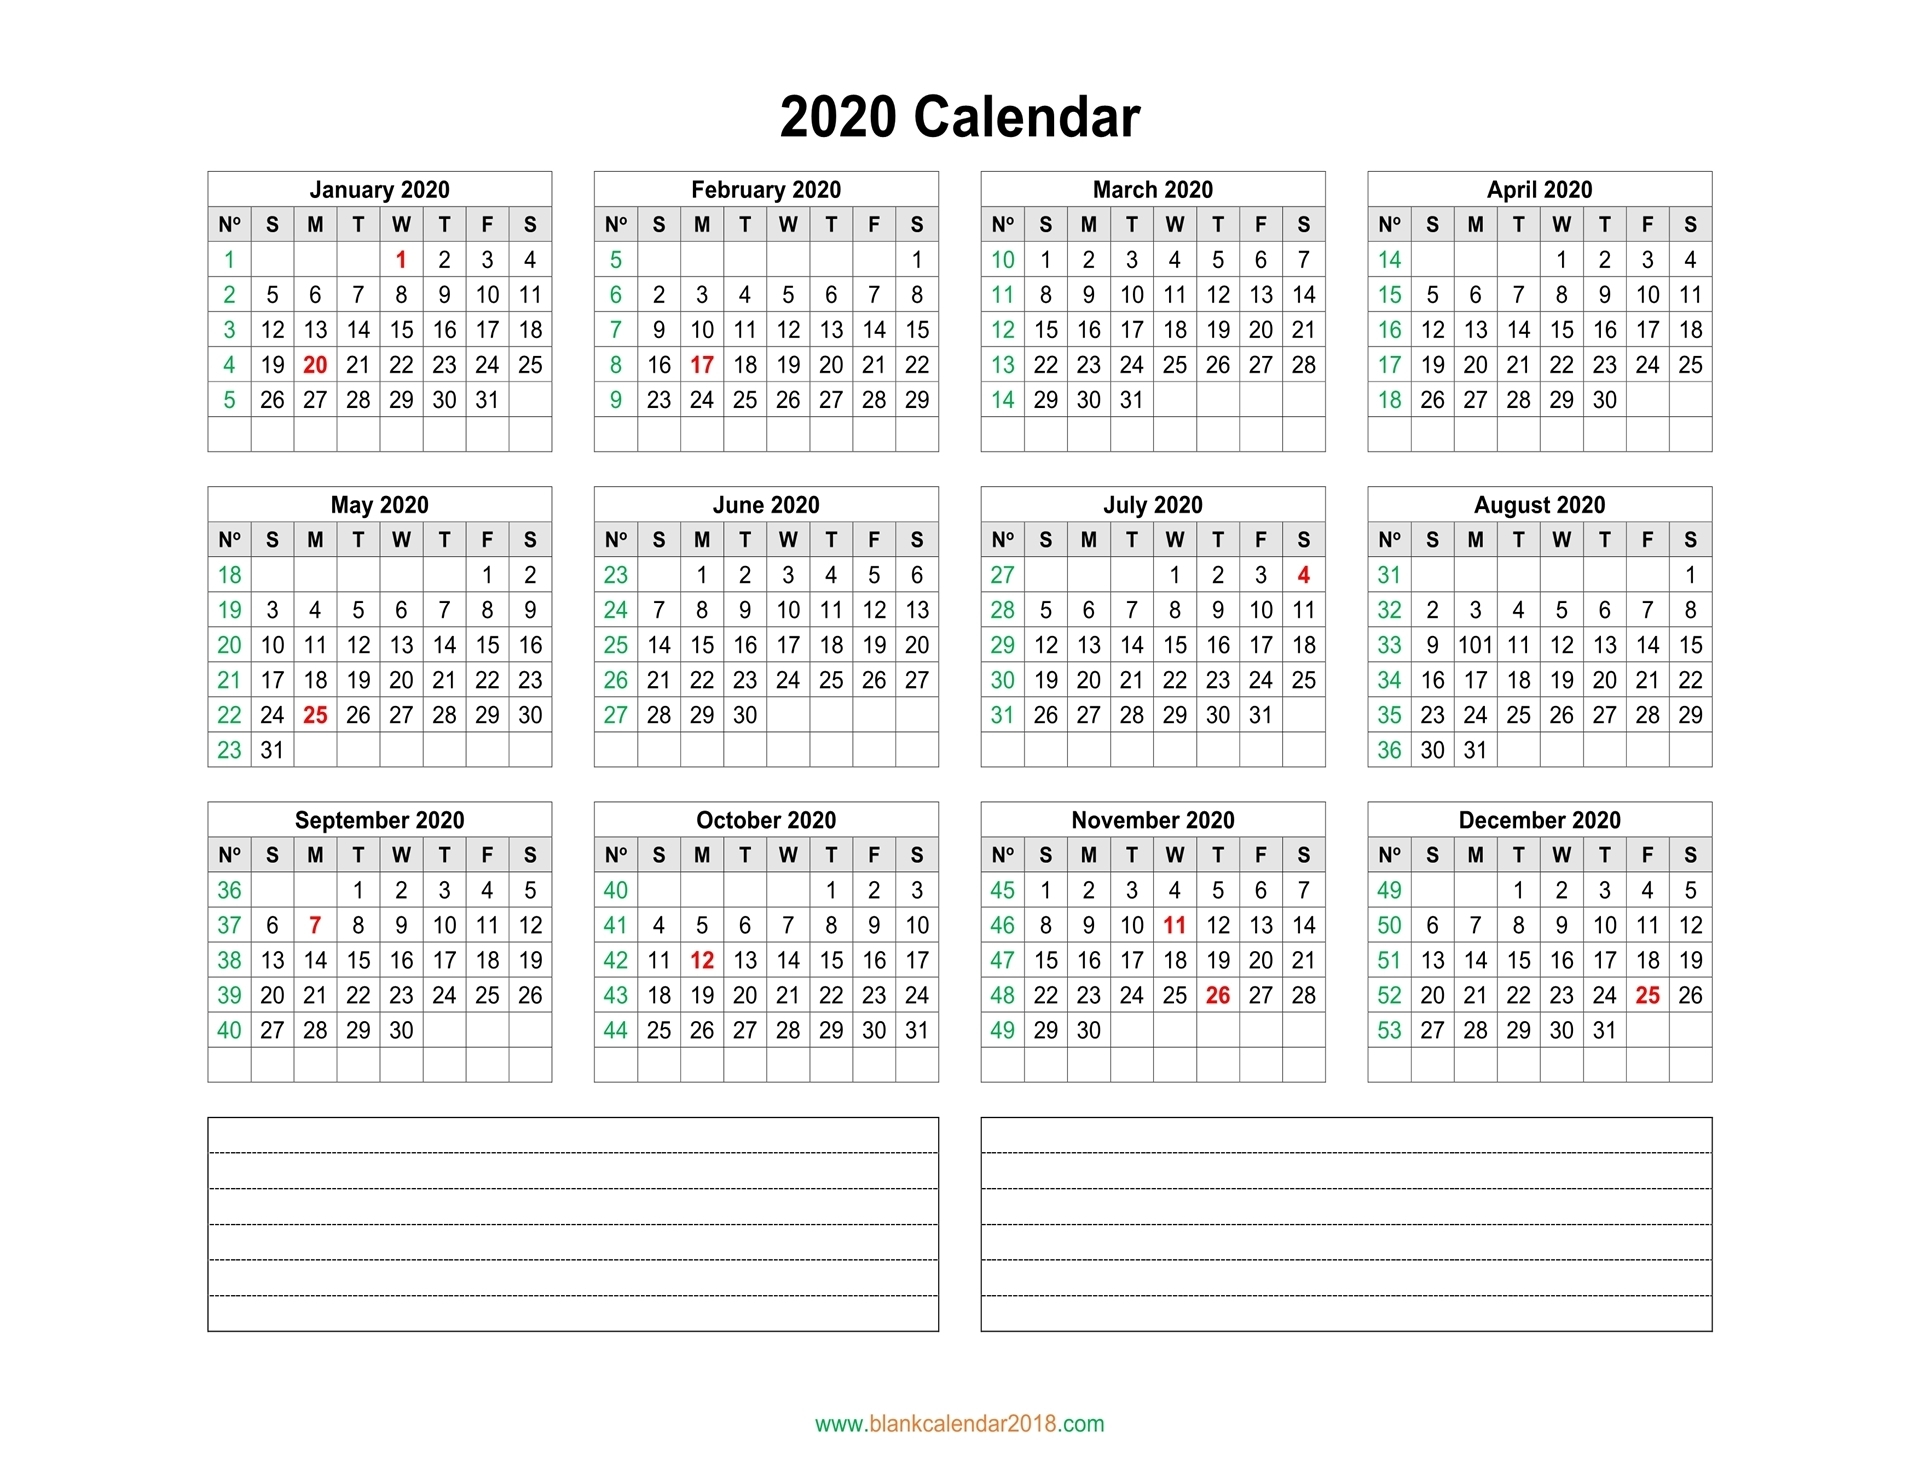 Blank Calendar 2020 for 2020 Year Calendar Printable With Space